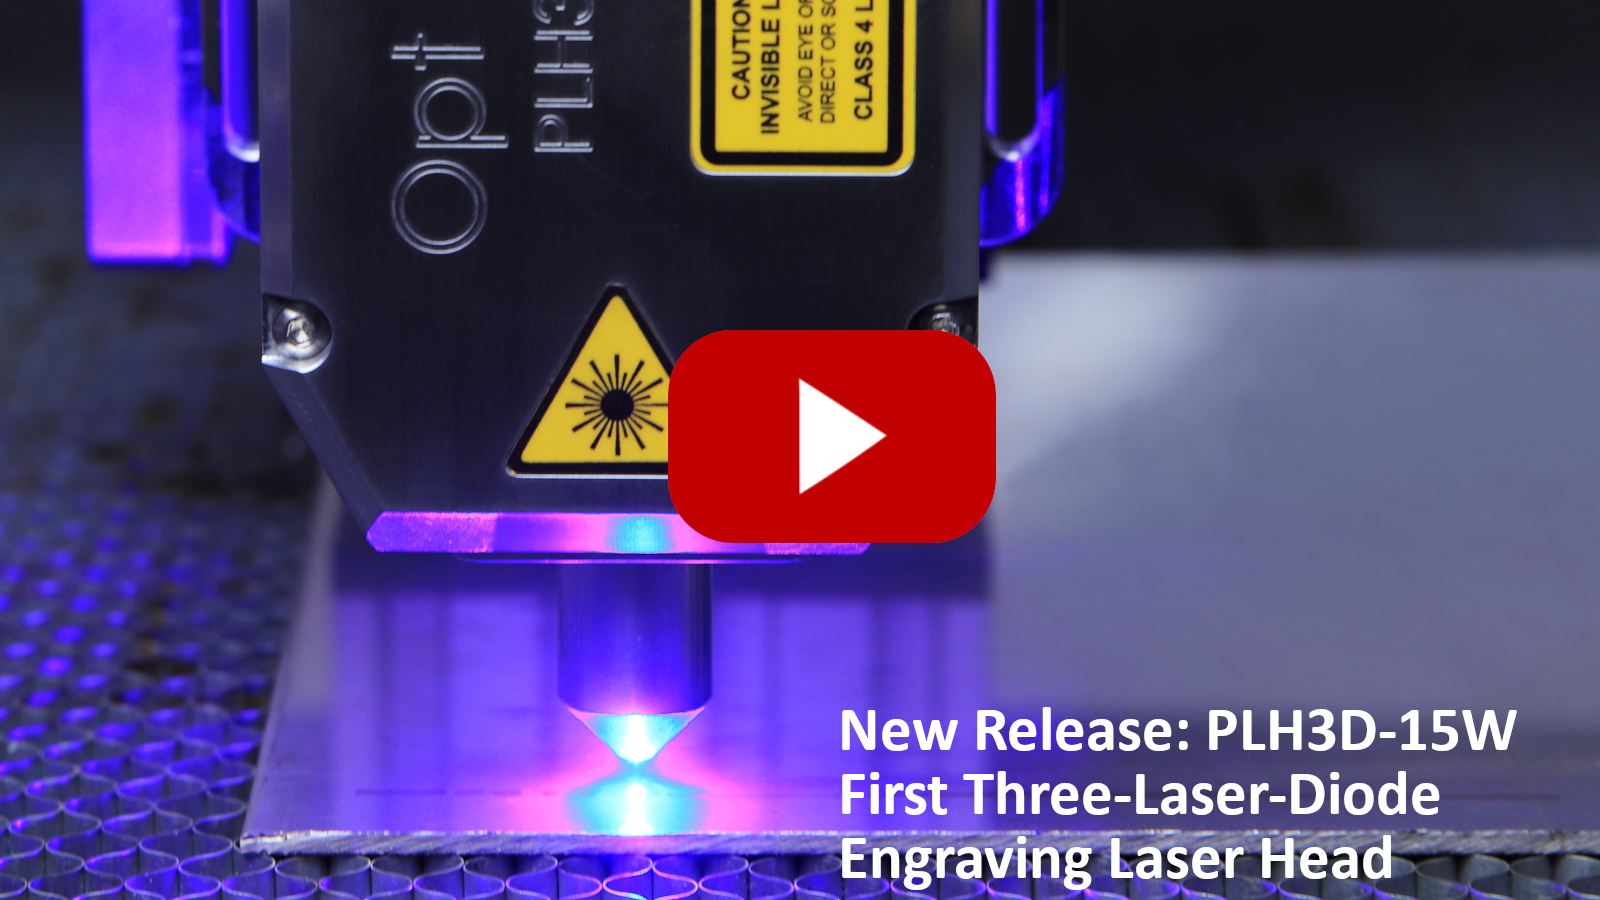 Laser Engraving and Cutting with PLH3D-15W Laser